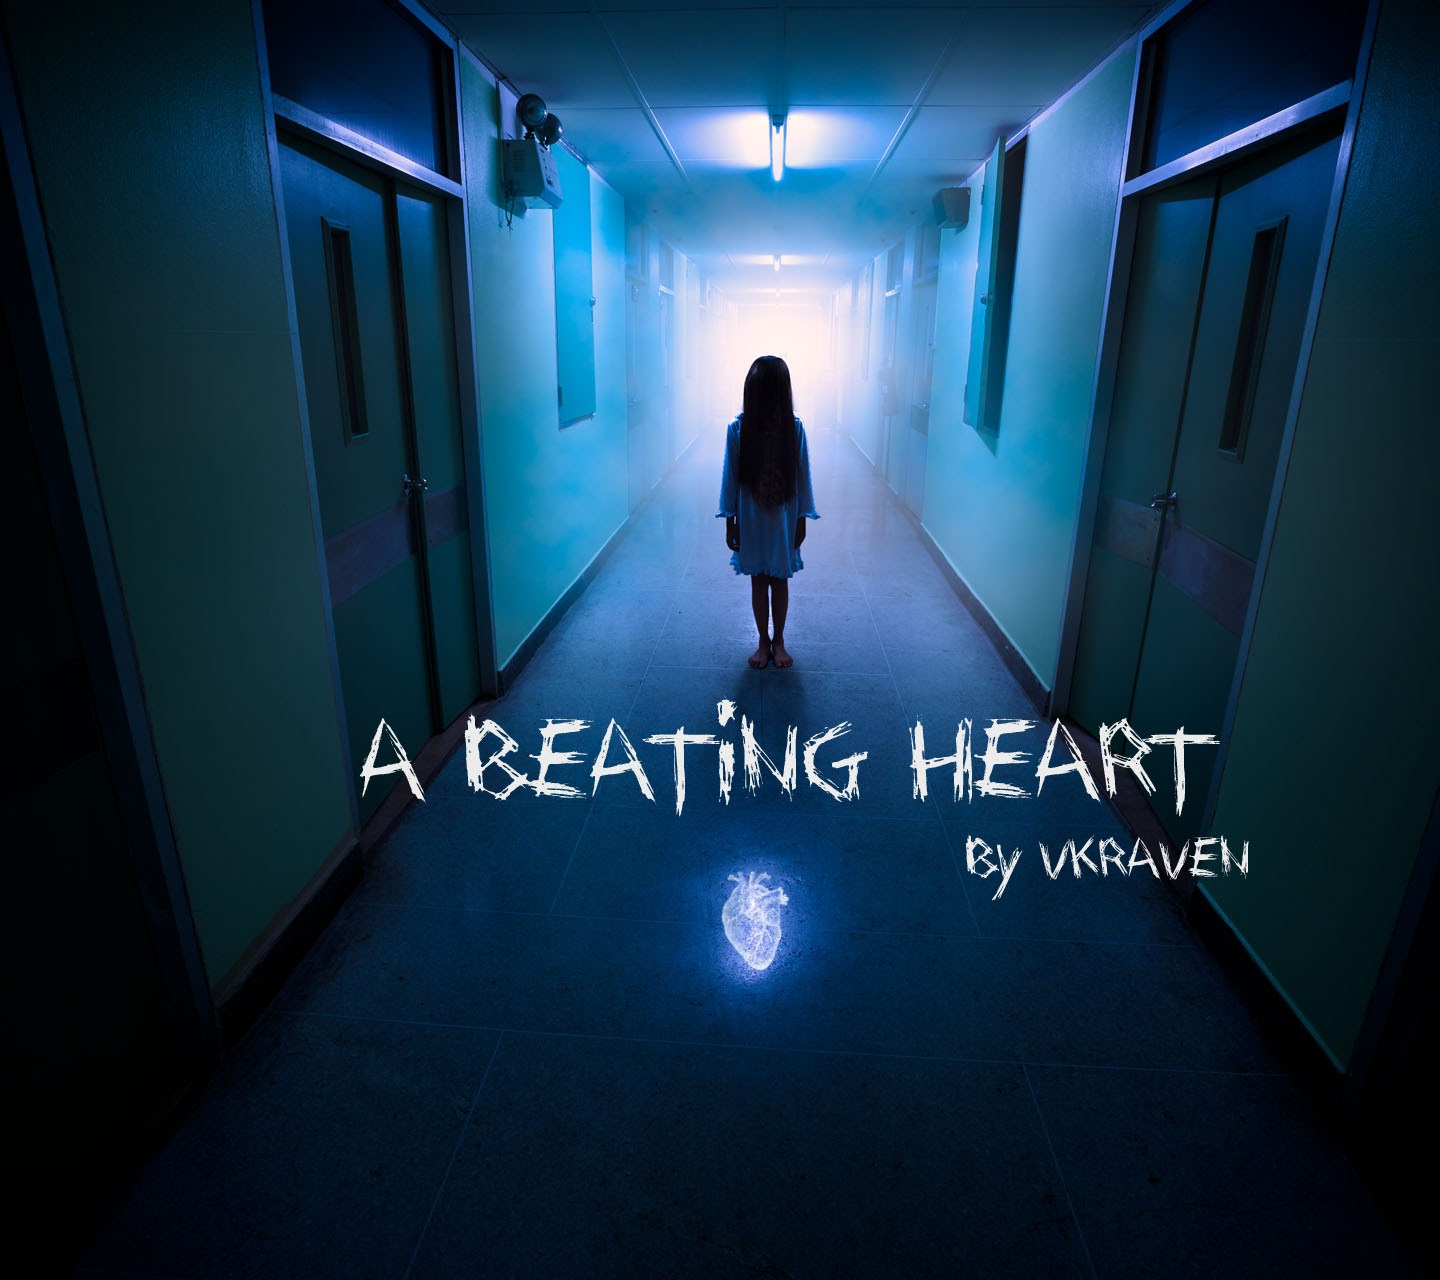 A Beating Heart (a short story)